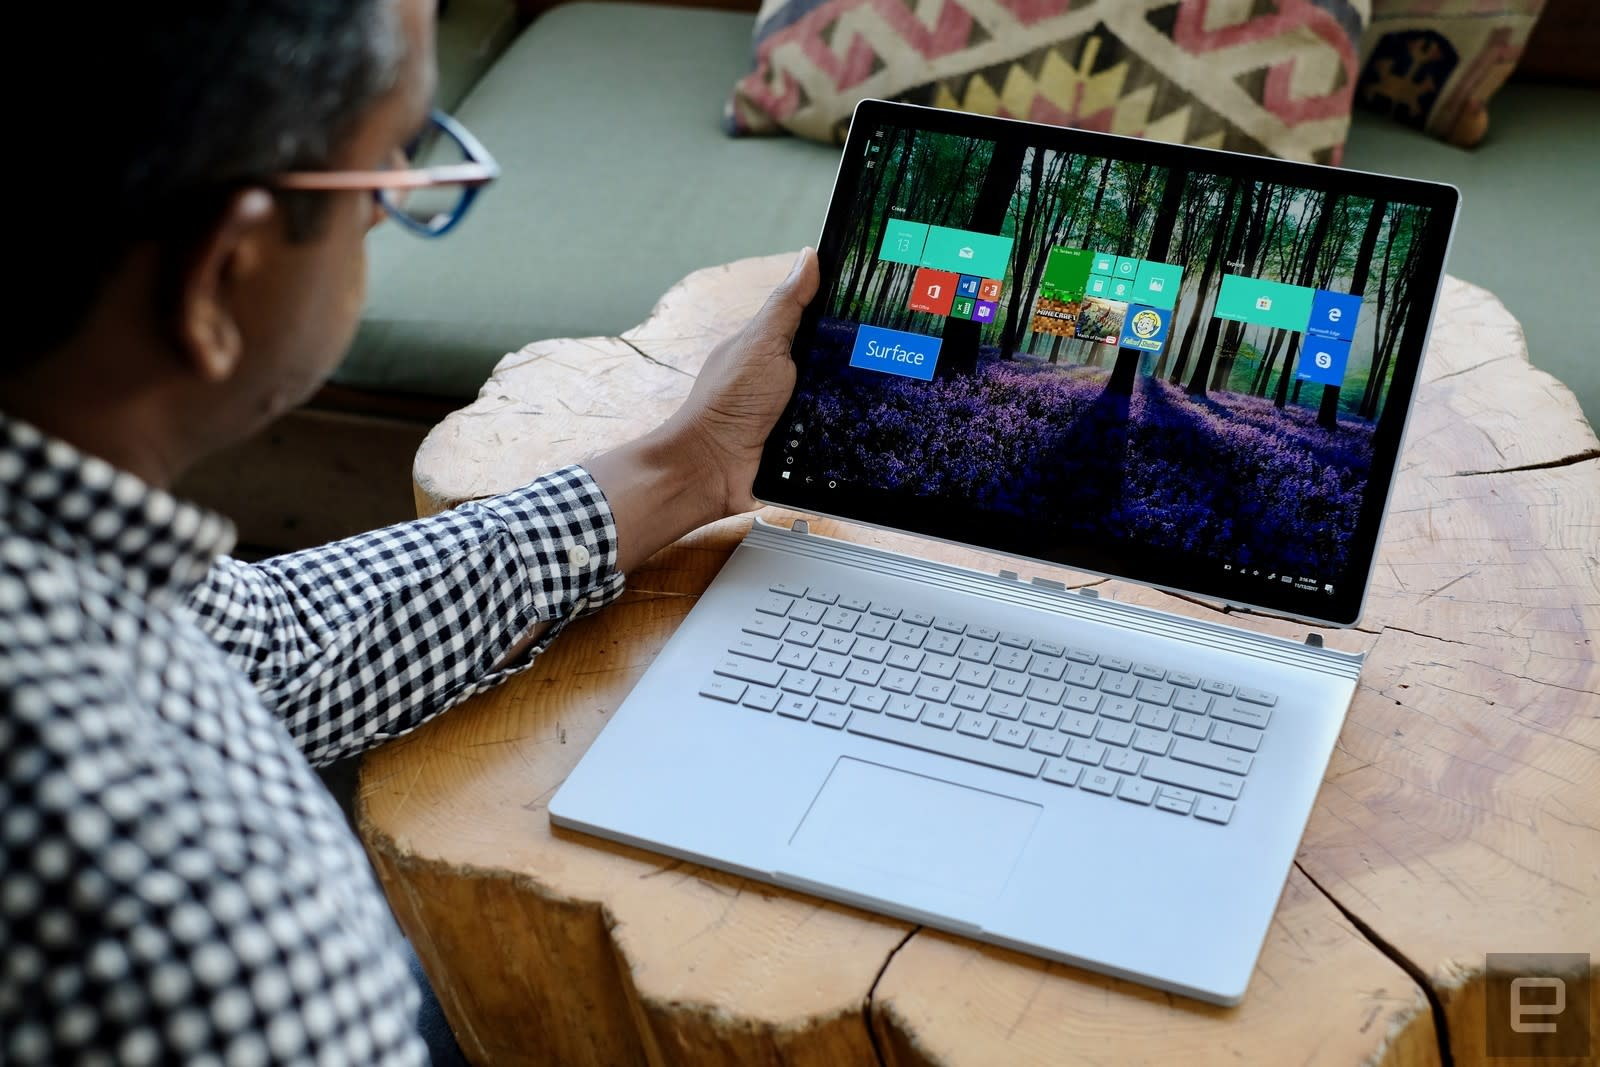 surface pro 2 owners manual